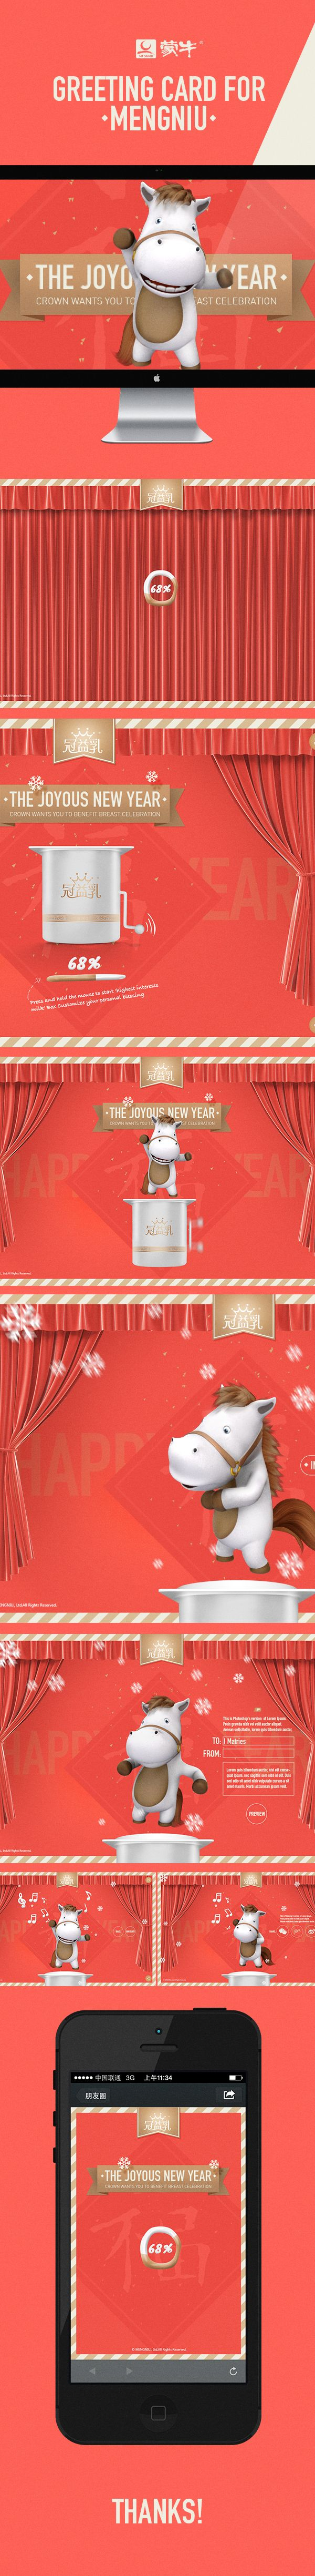 Greeting Card for mengniu on Behance